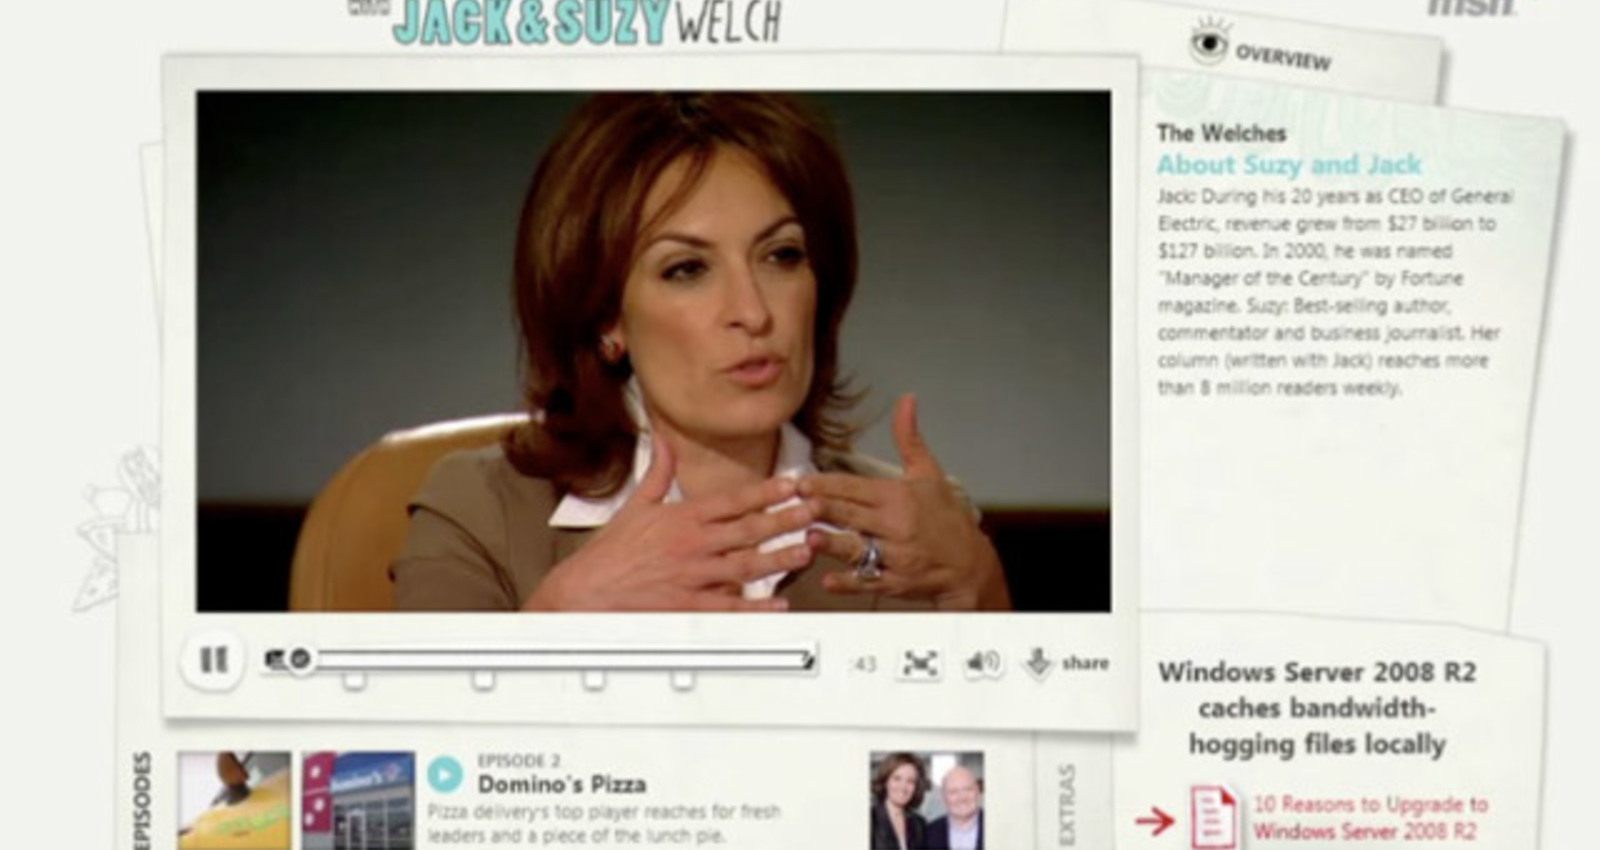 Jack and Suzy Welch Show